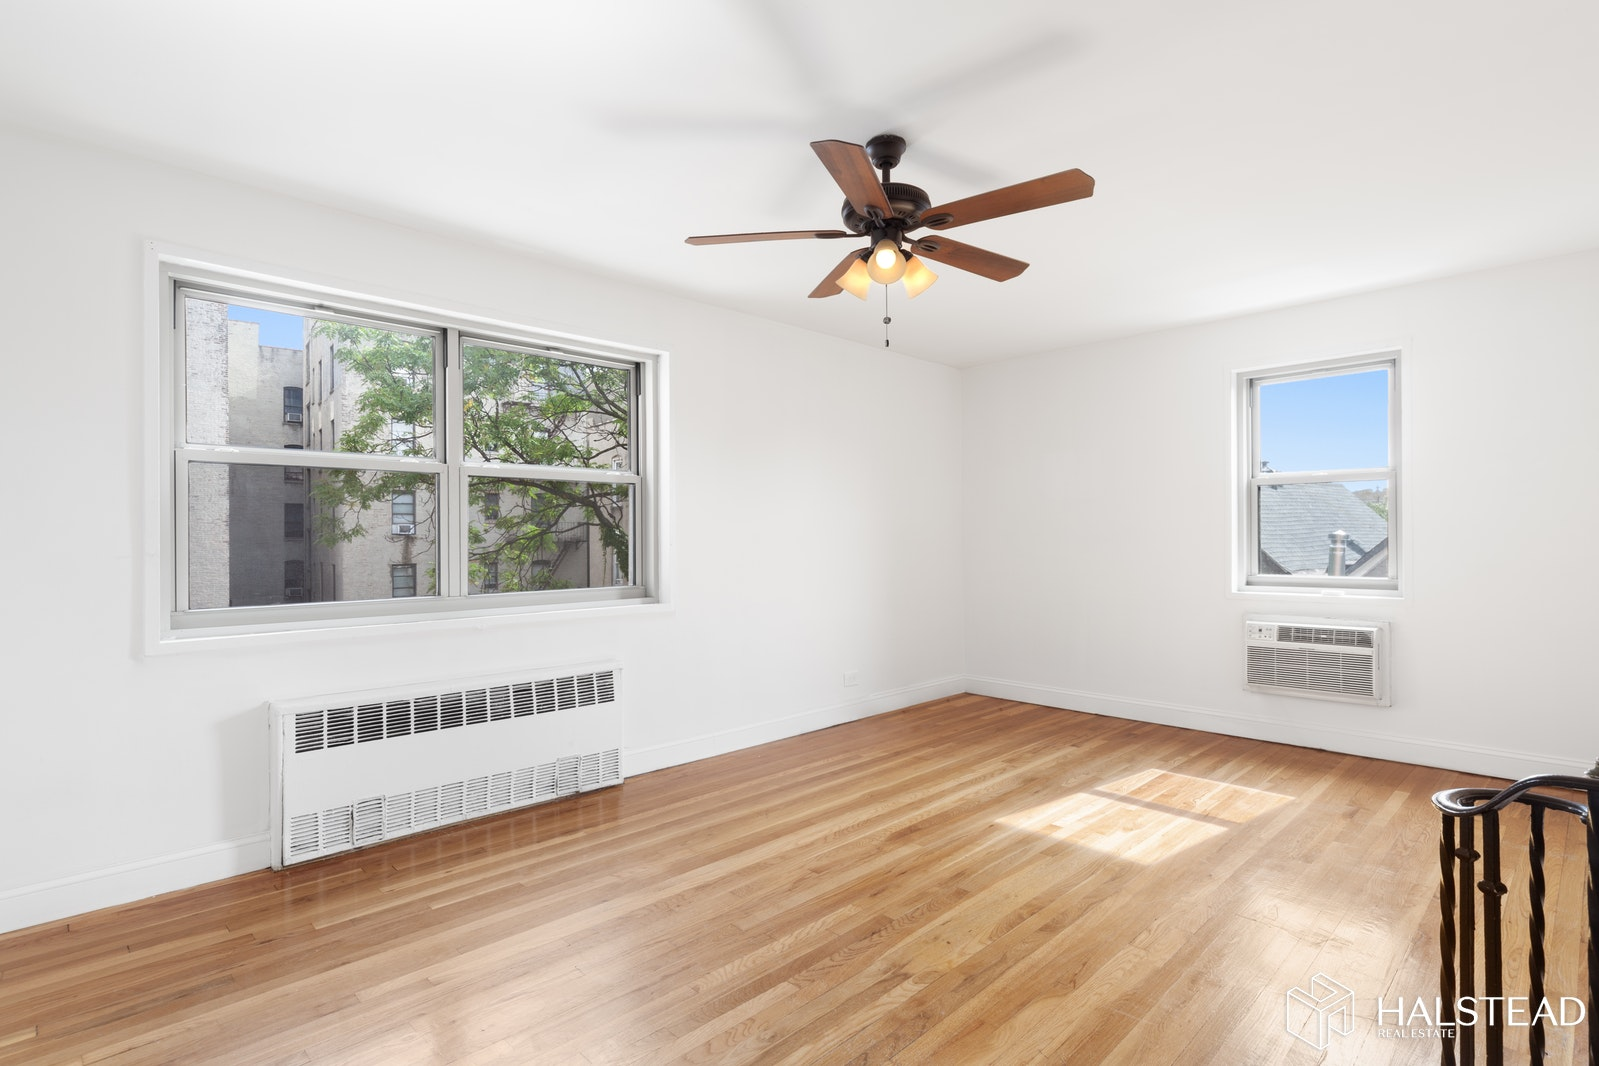 1010 Sherman Avenue 3d, Concourse Village, New York, 10456, $175,000, Property For Sale, Halstead Real Estate, Photo 2